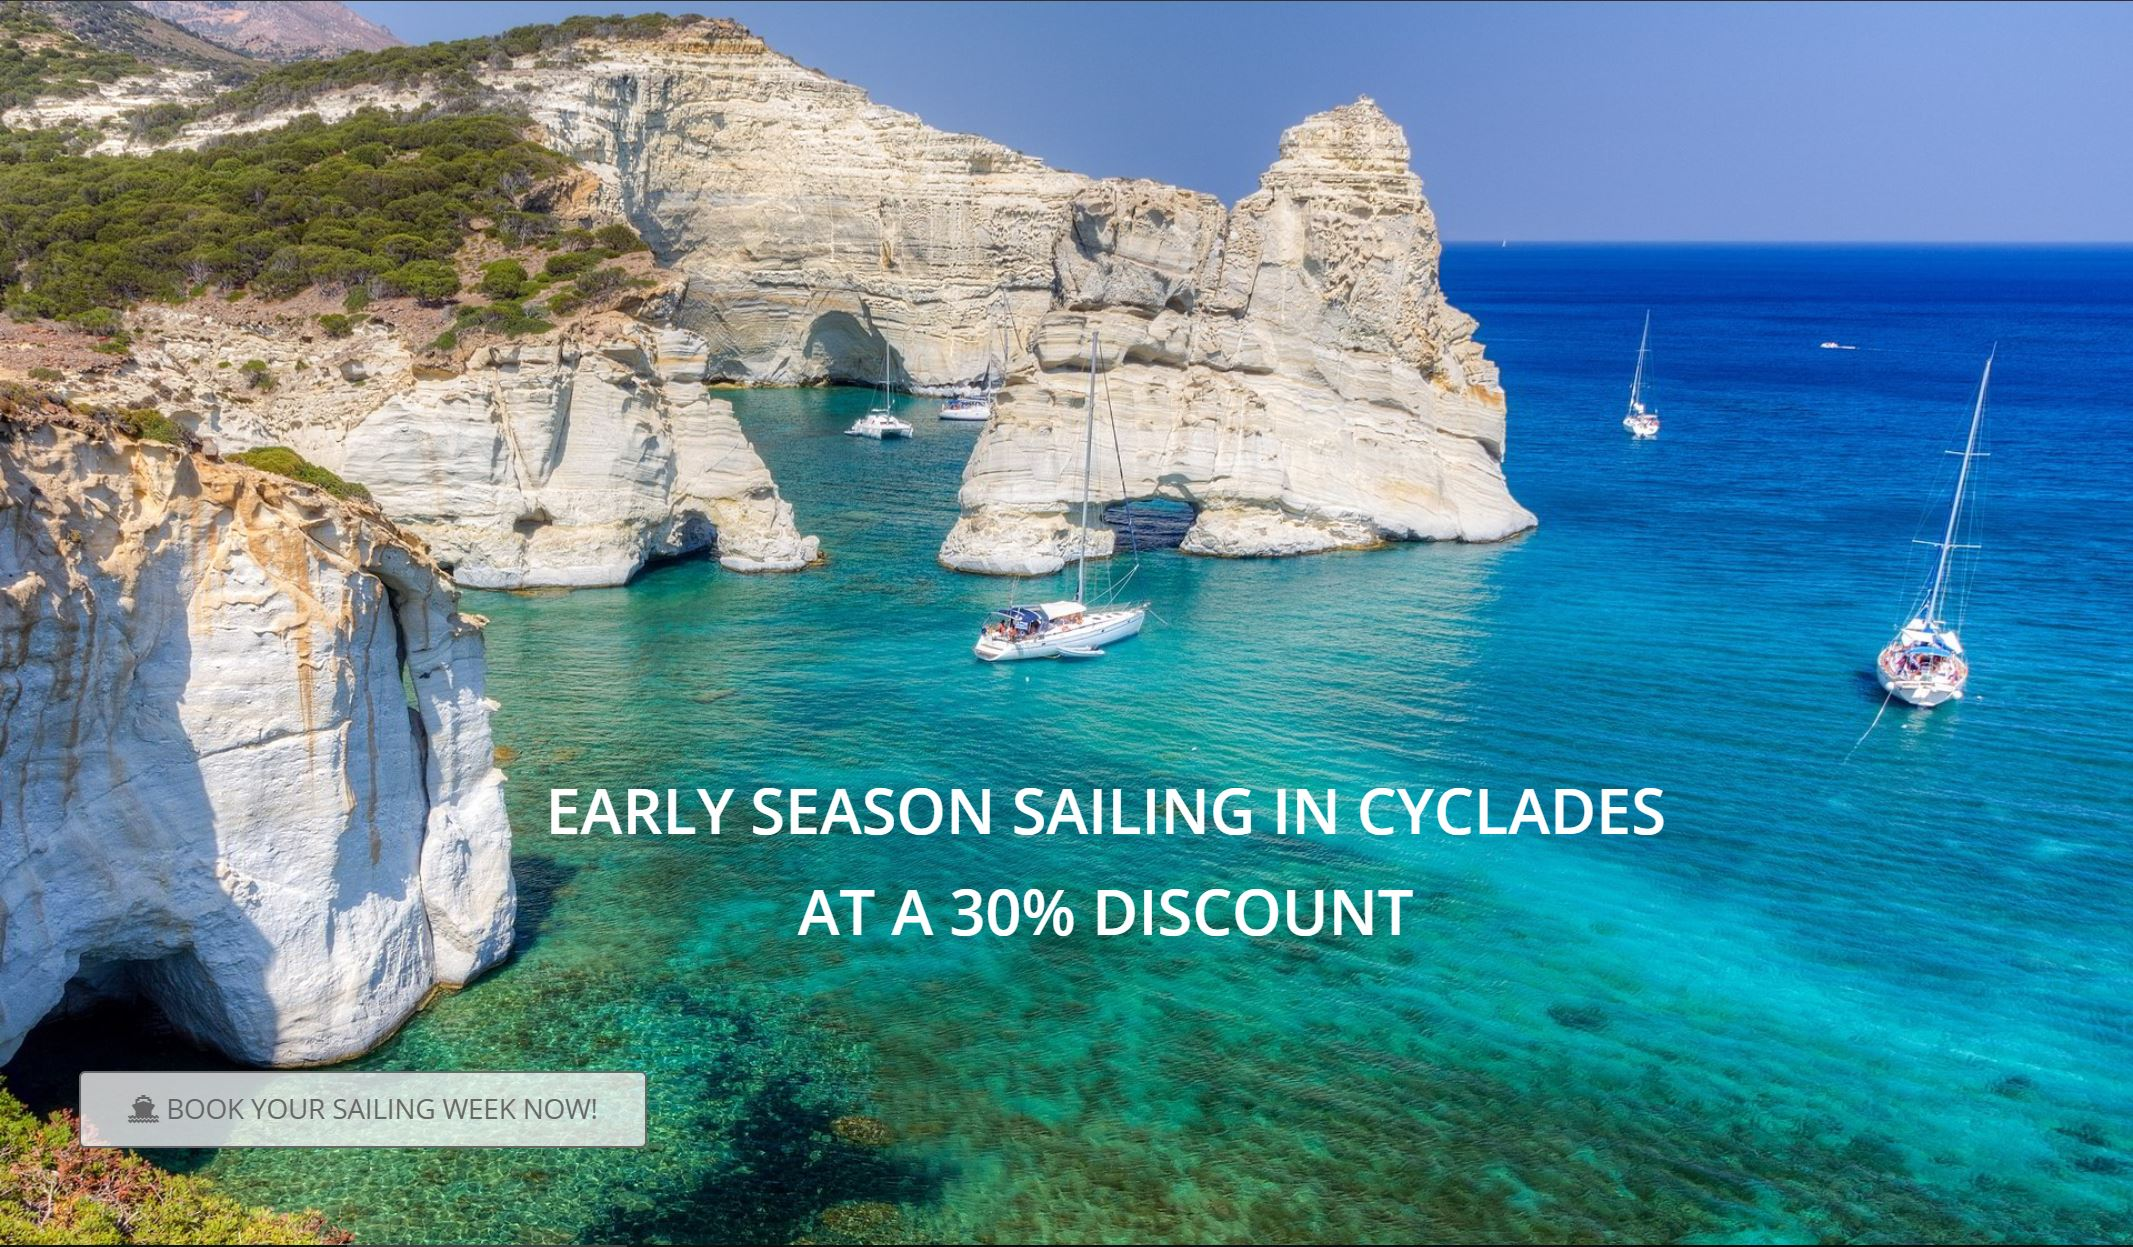 Early season sailing discounts of a 30% for the months of April and May